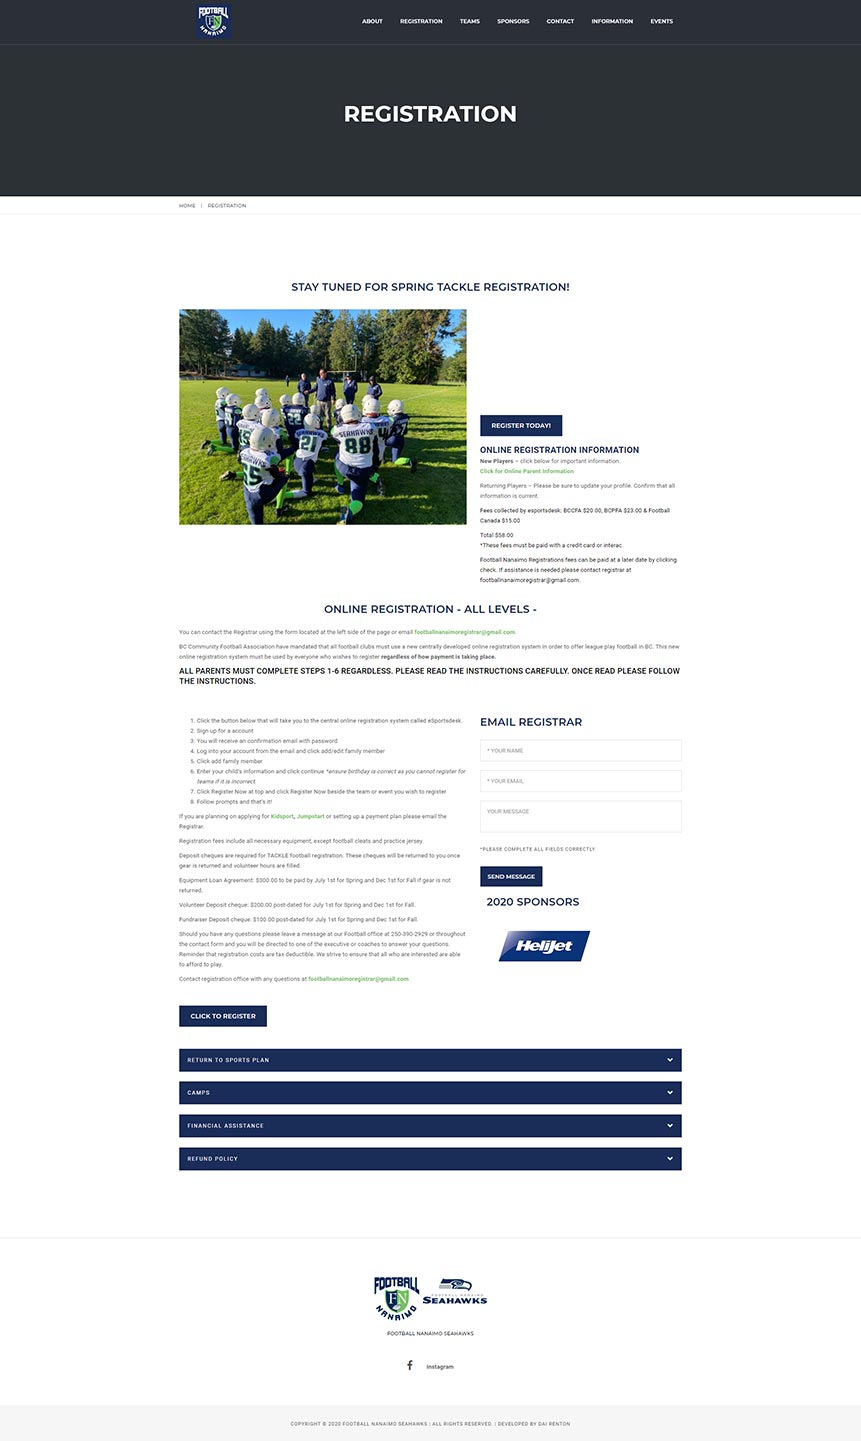 Football Nanaimo website design